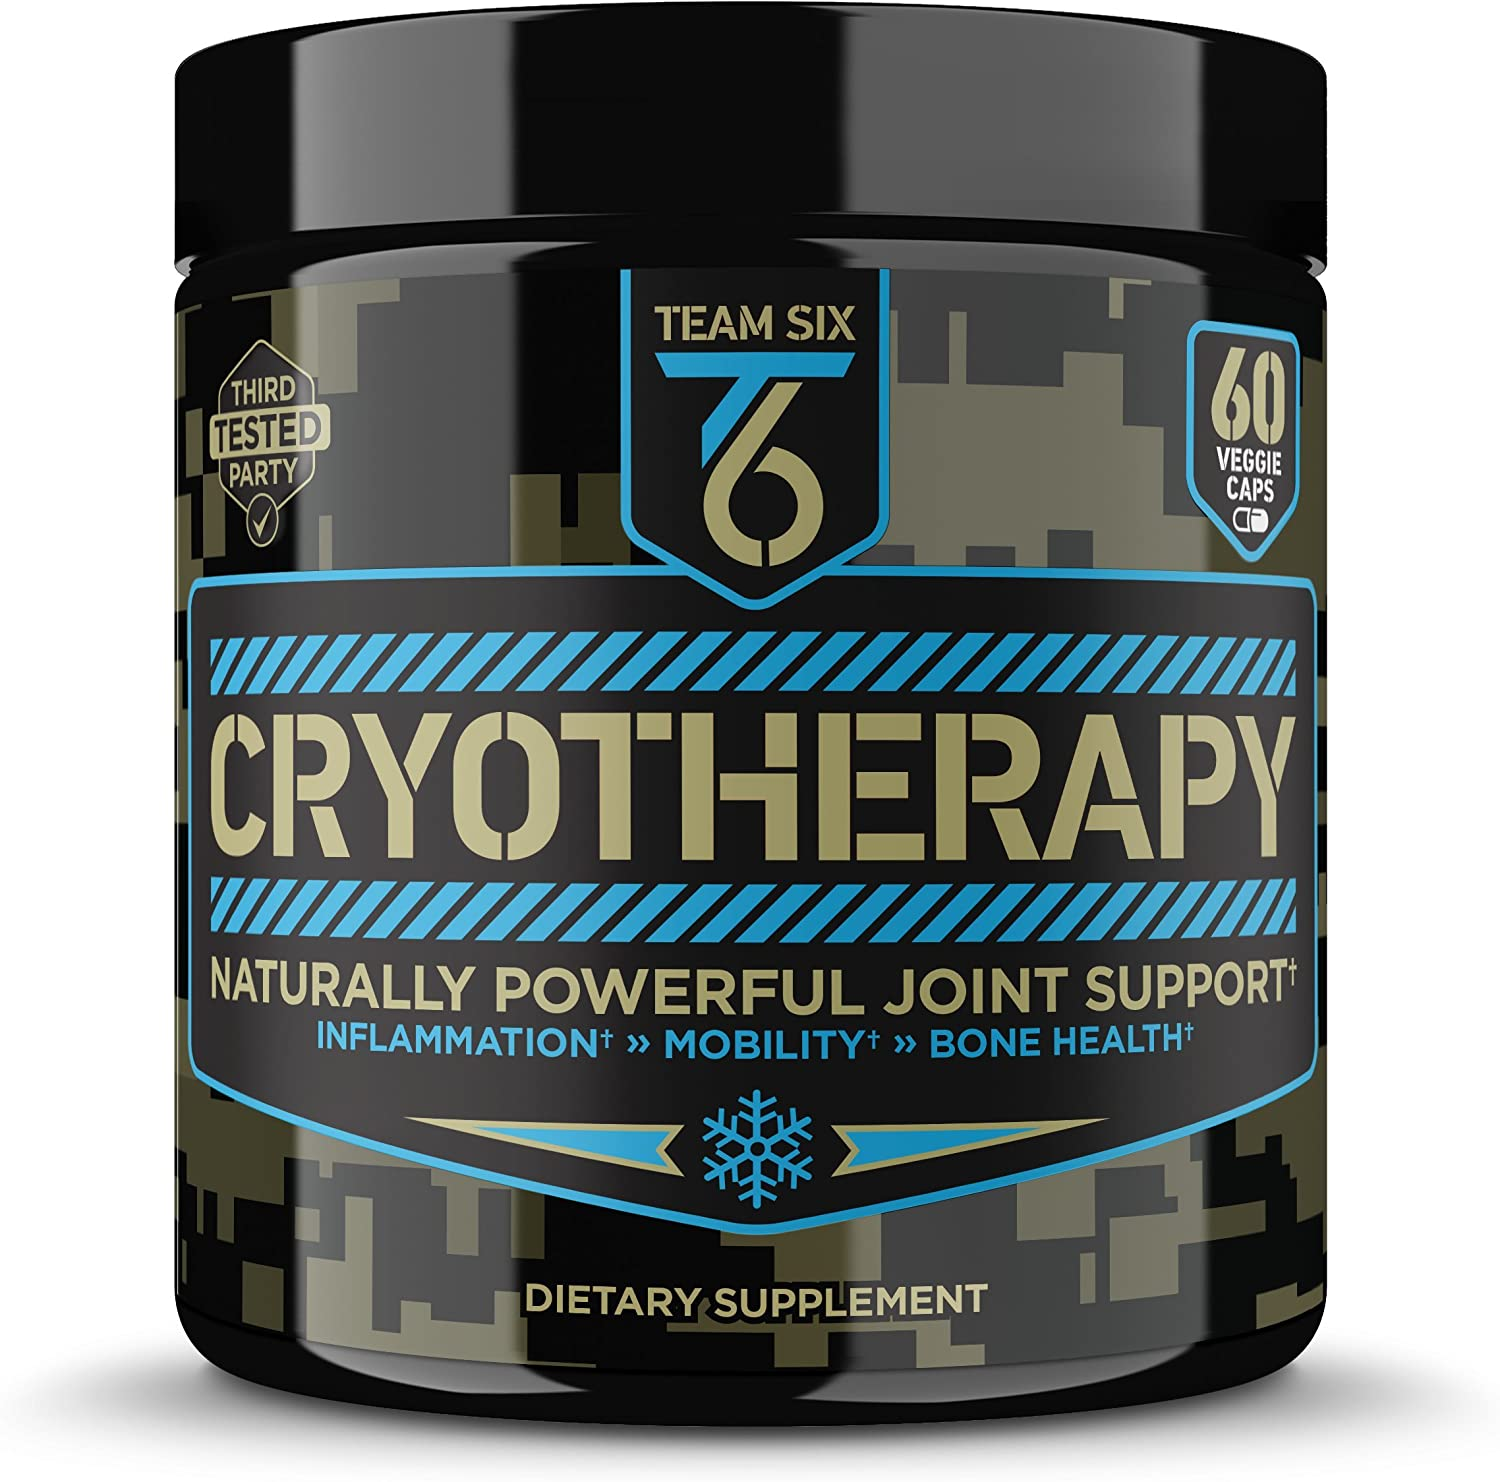 Review of T6 Cryotherapy - Natural Joint Support Supplement | Arthritis Pain Relief